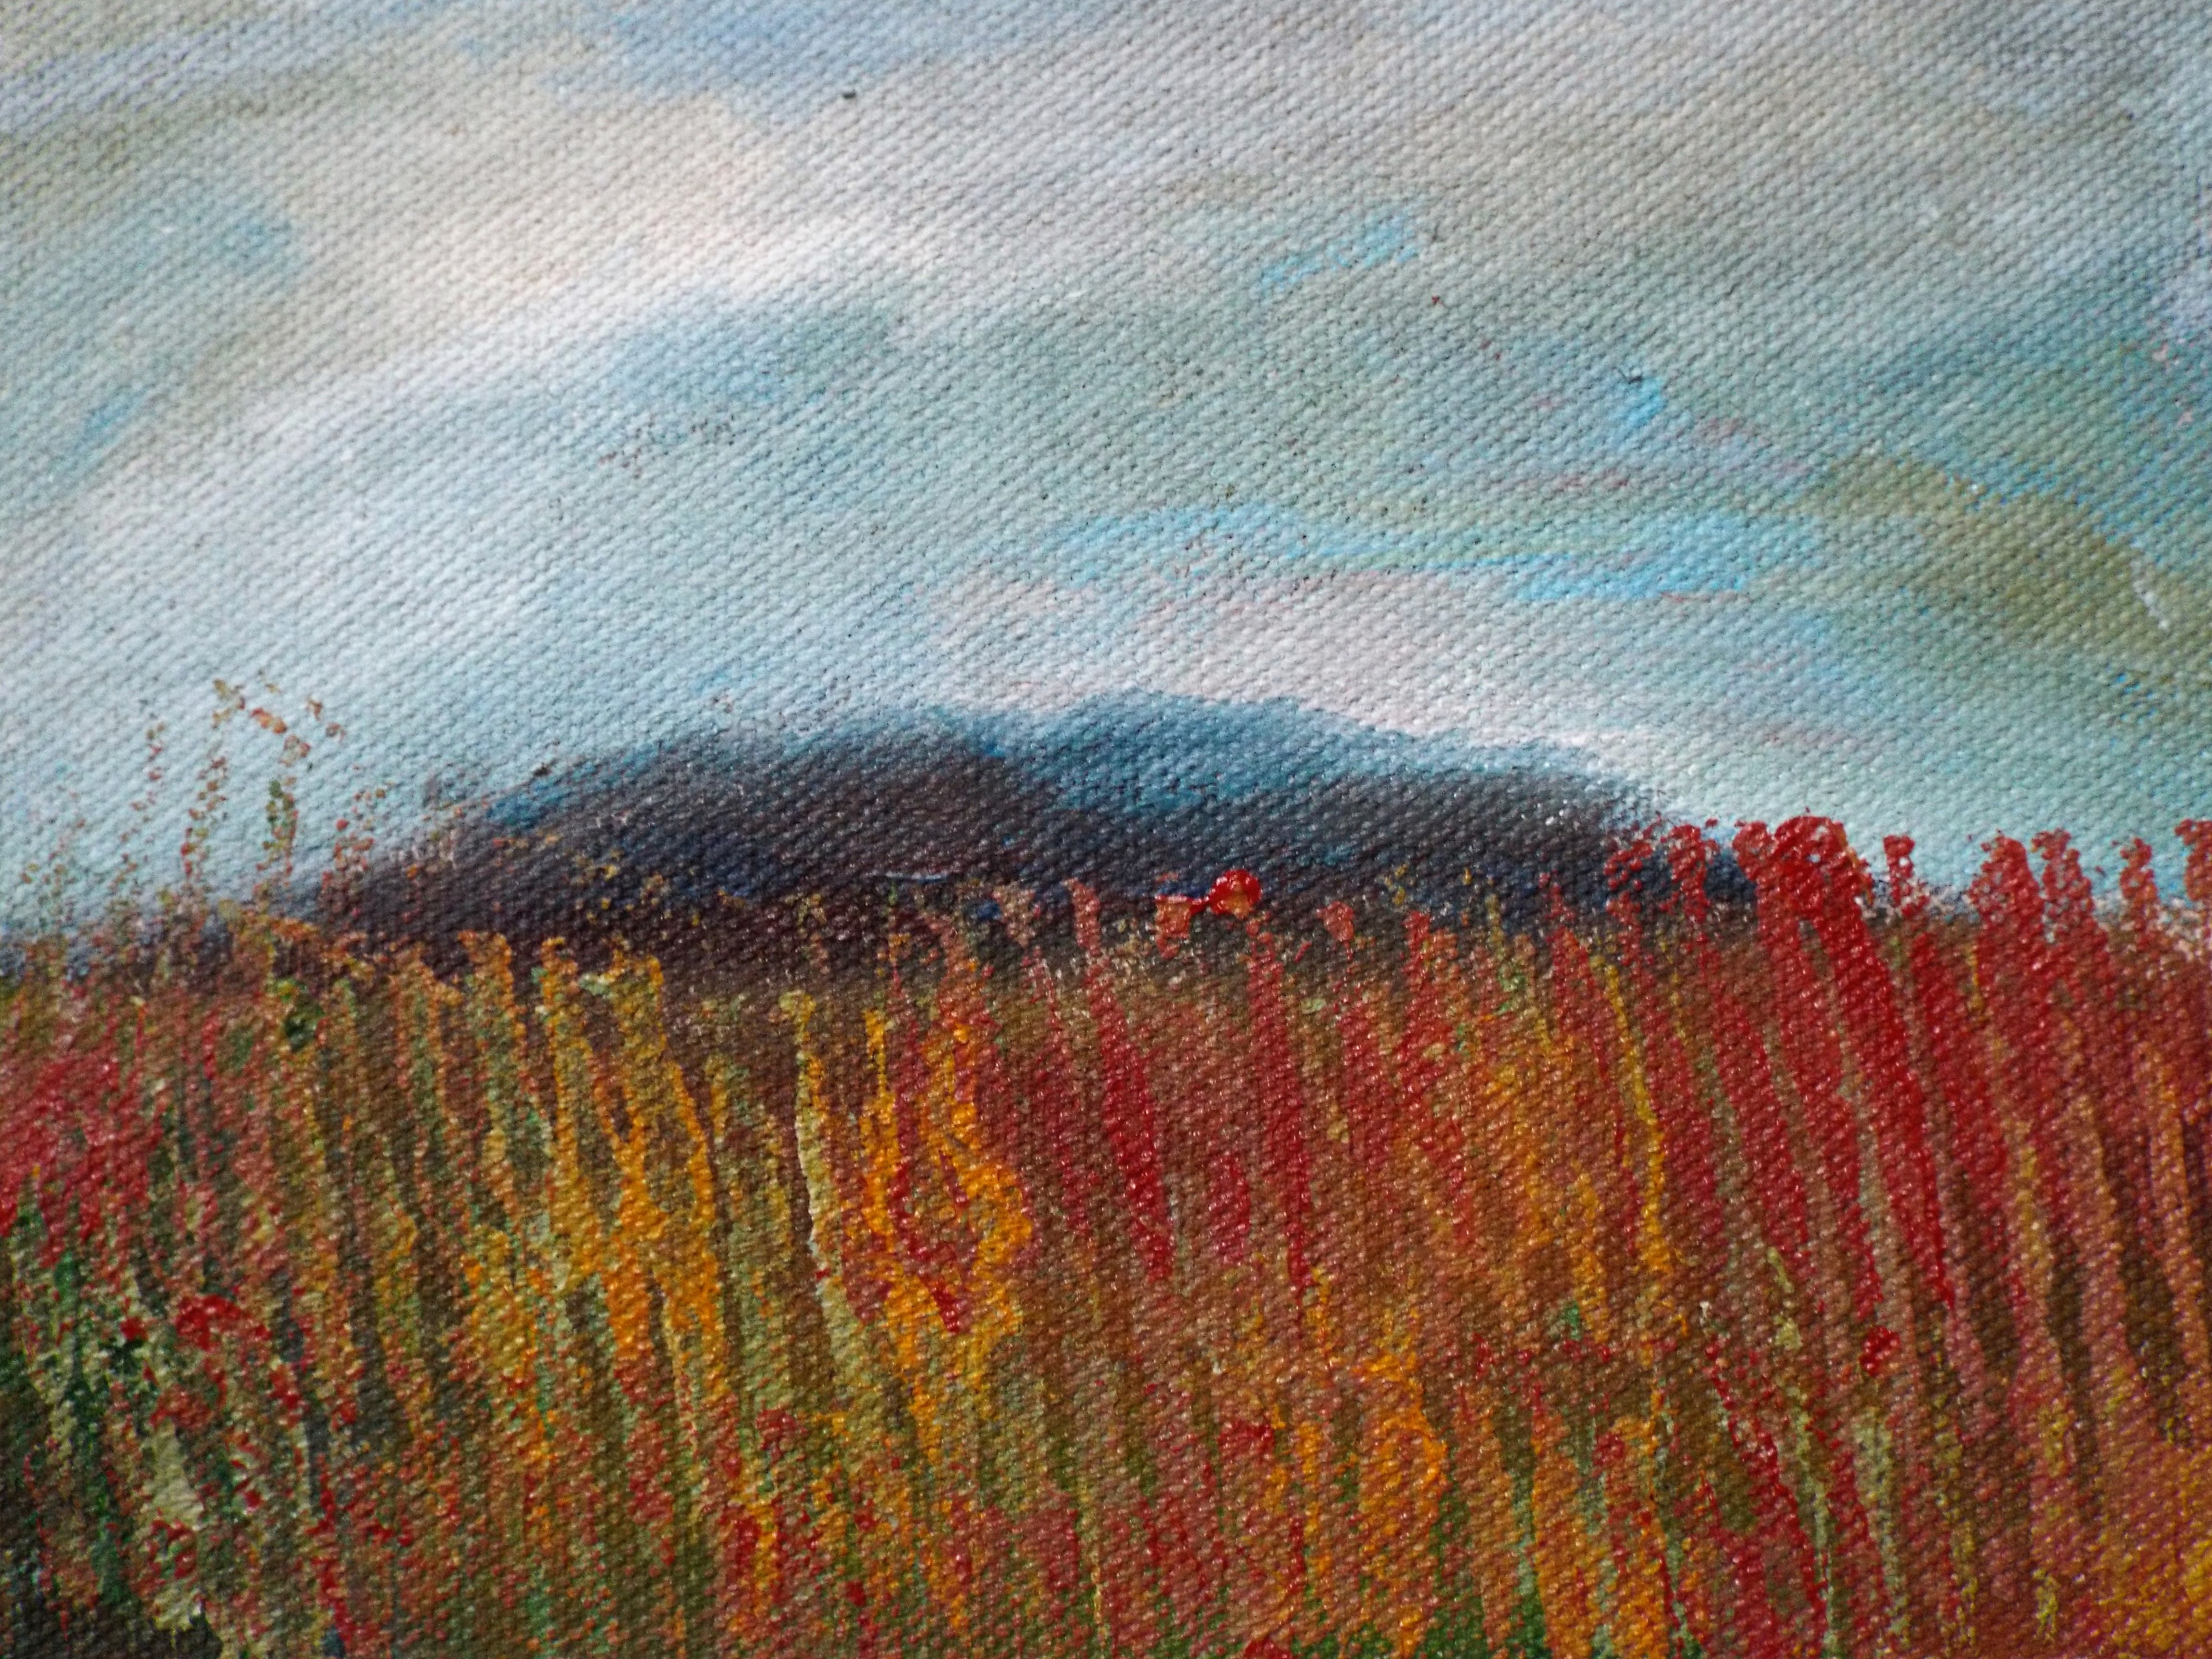 The hill behind the tall grass